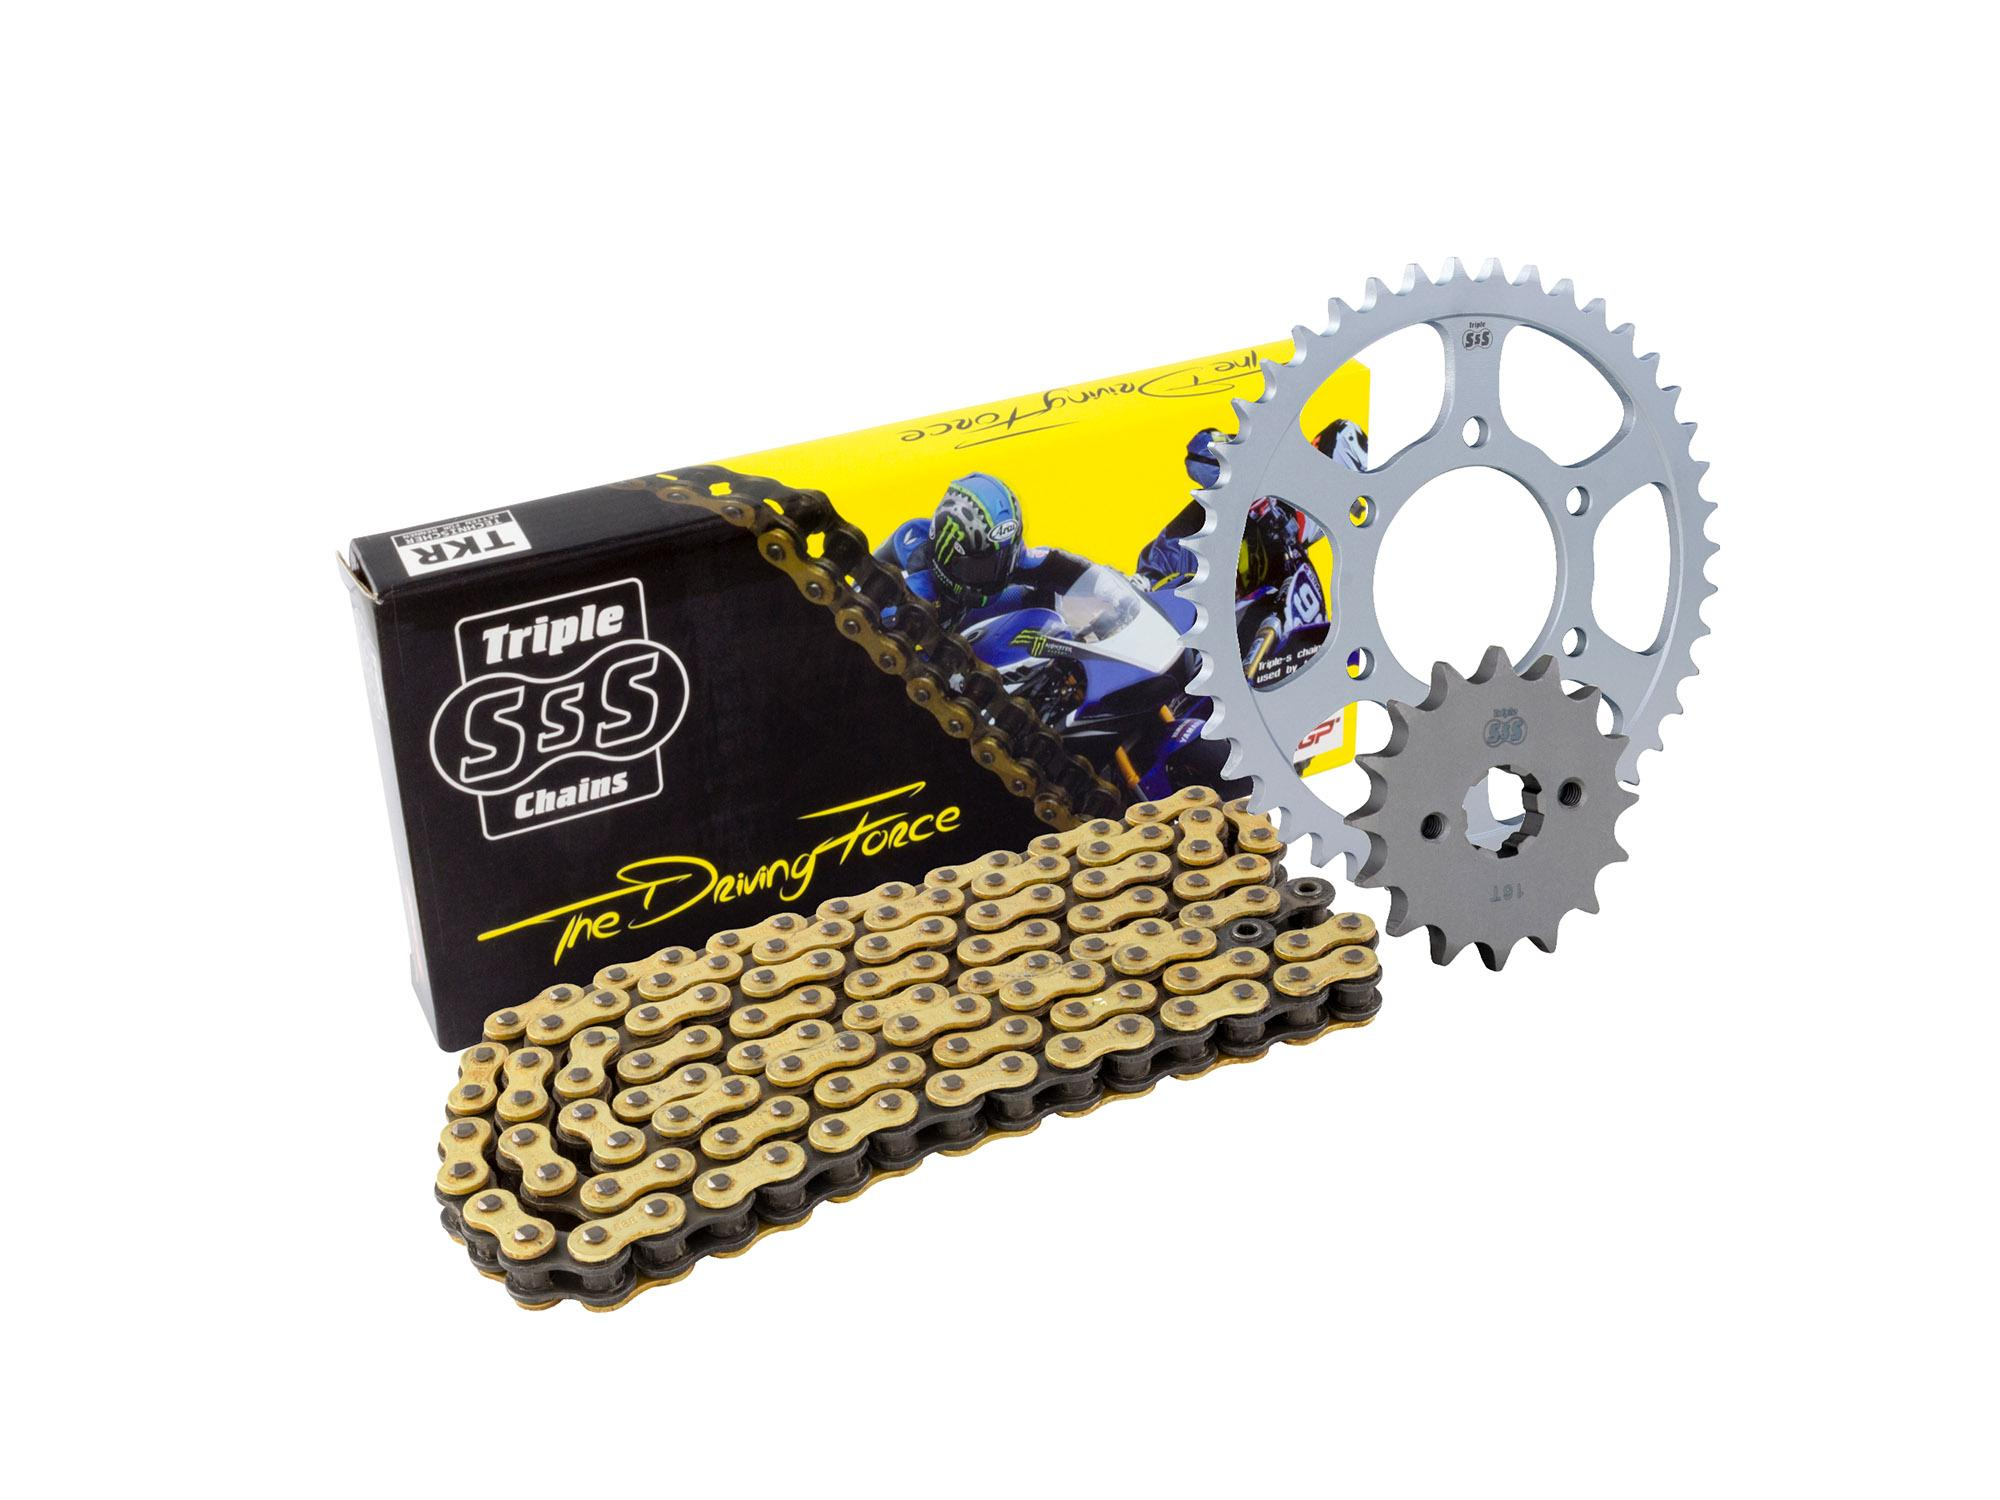 Suzuki SV1000 K3-K7 03-07 Chain & Sprocket Kit: 17T Front, 40T Rear, HD O-Ring Gold Chain 530H 110 Link